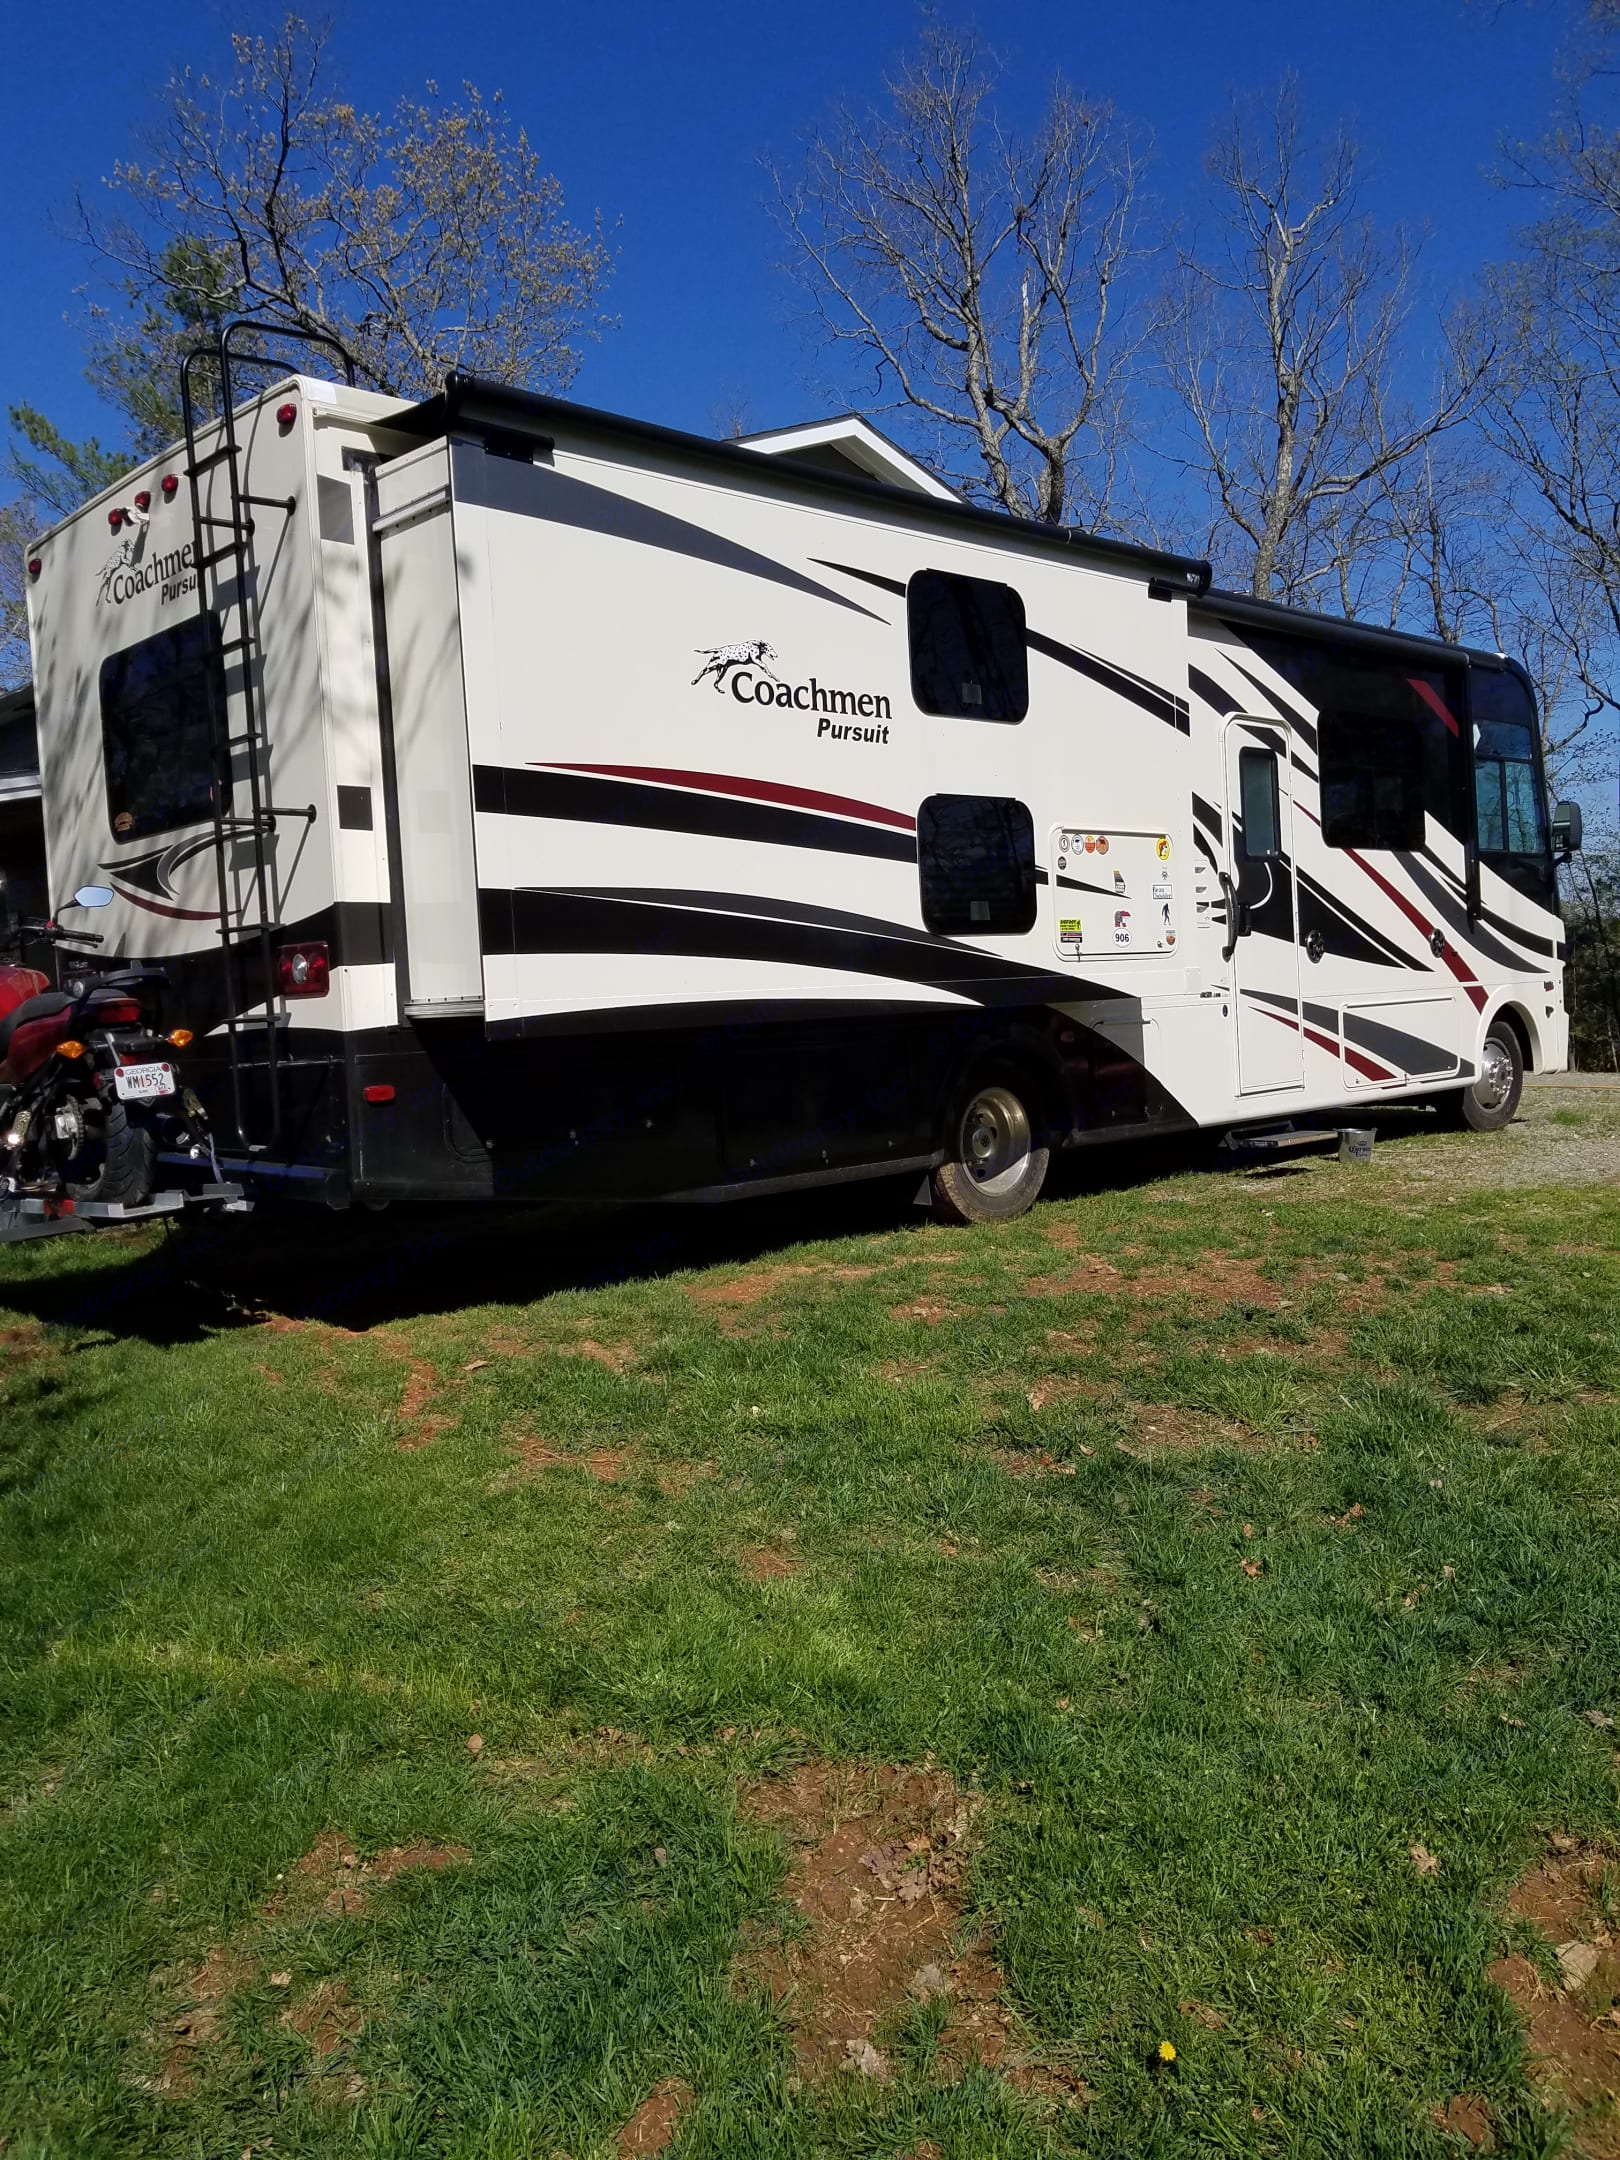 Traveling is more fun when you bring your own bed! This 2017 Coachman Pursuit Bunkhouse motorhome is ready for your adventures. . Coachmen Pursuit 2017